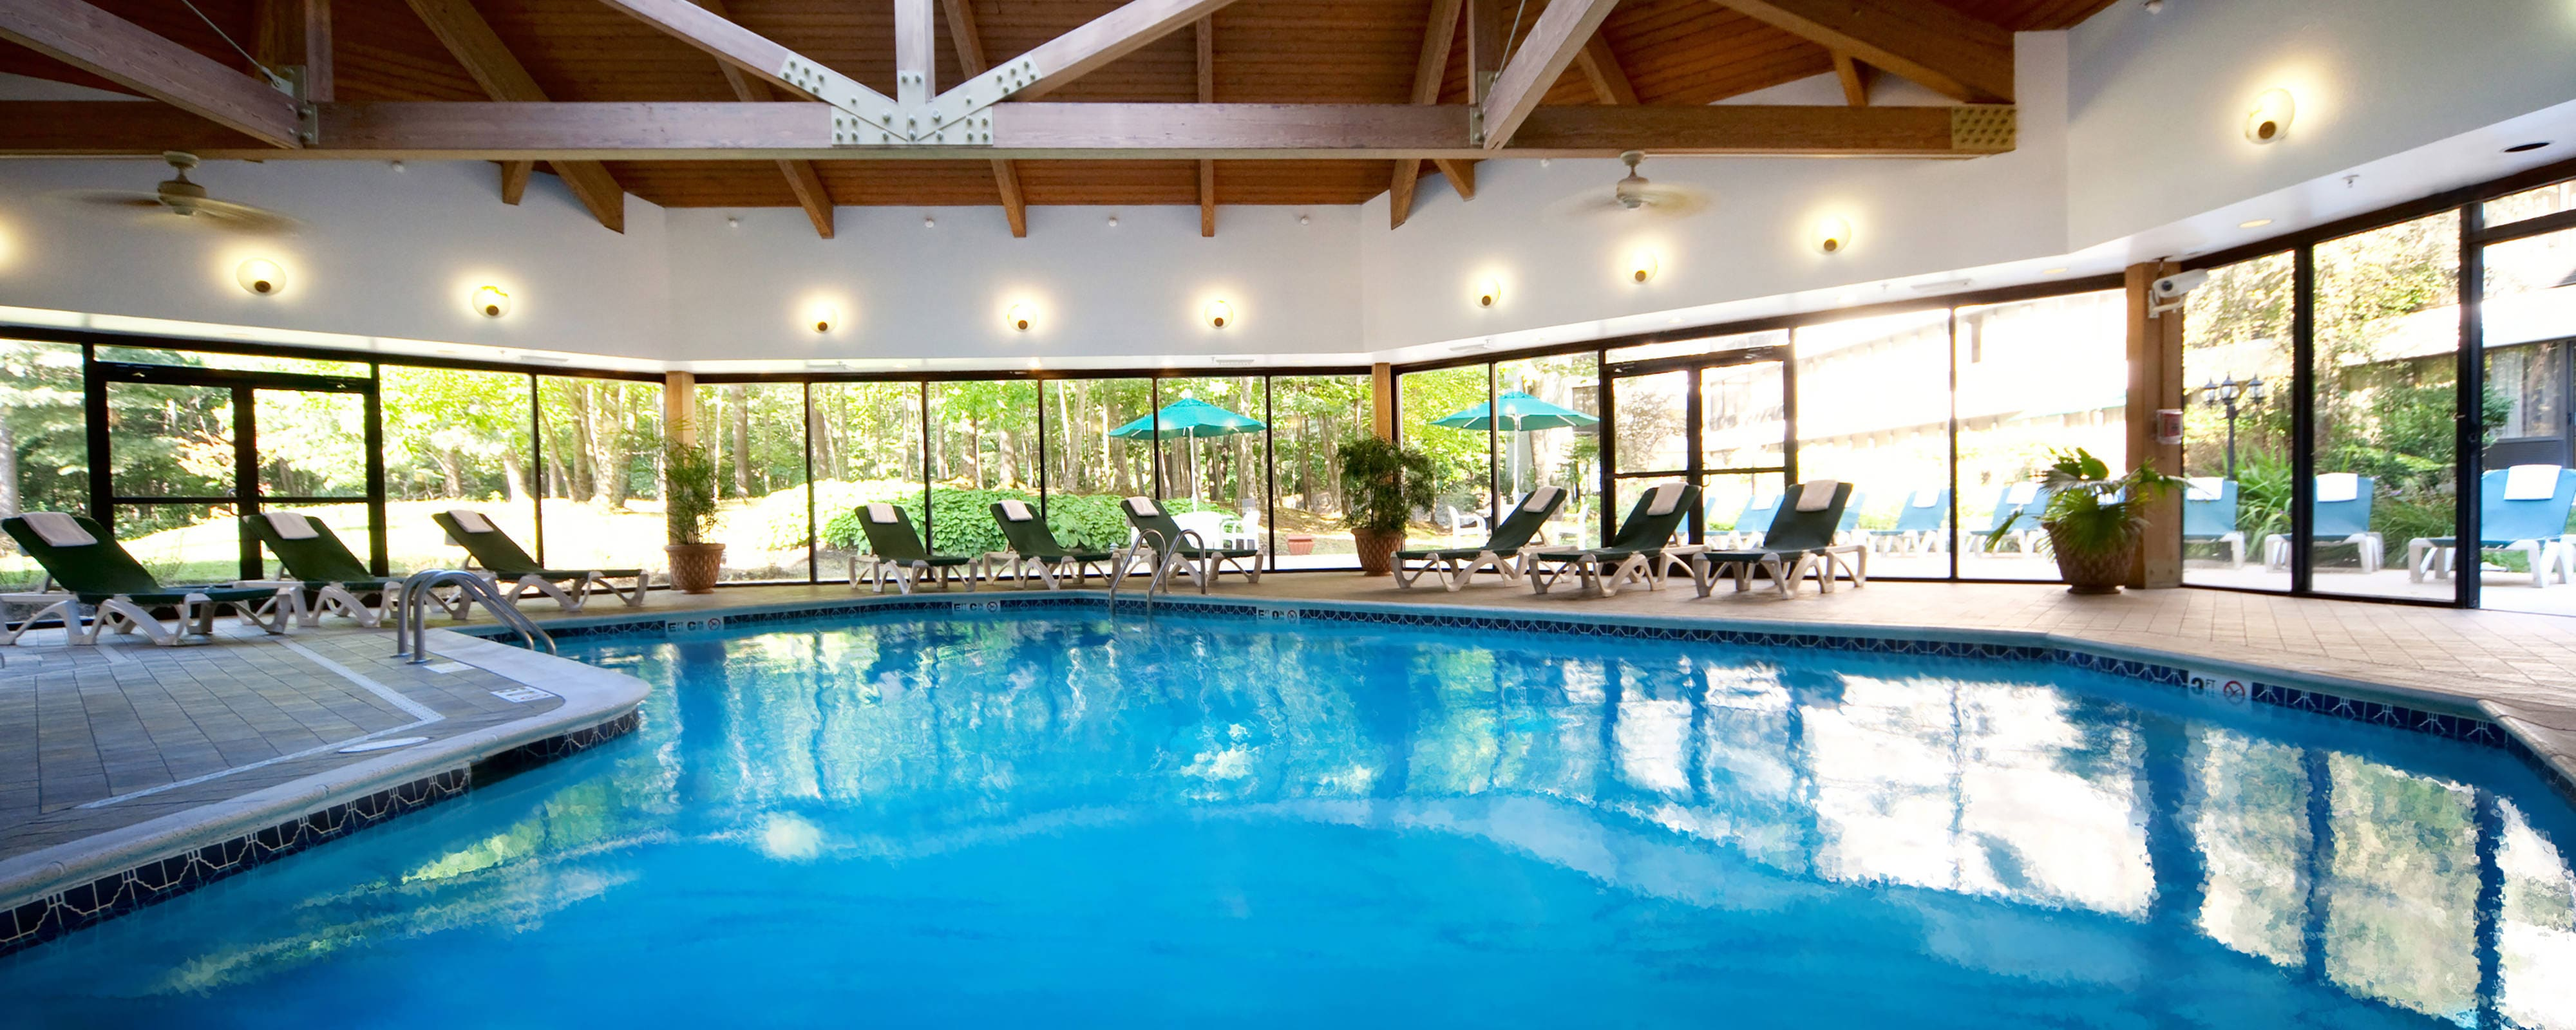 South Portland Maine Hotels With Pools Marriott At Sable Oaks